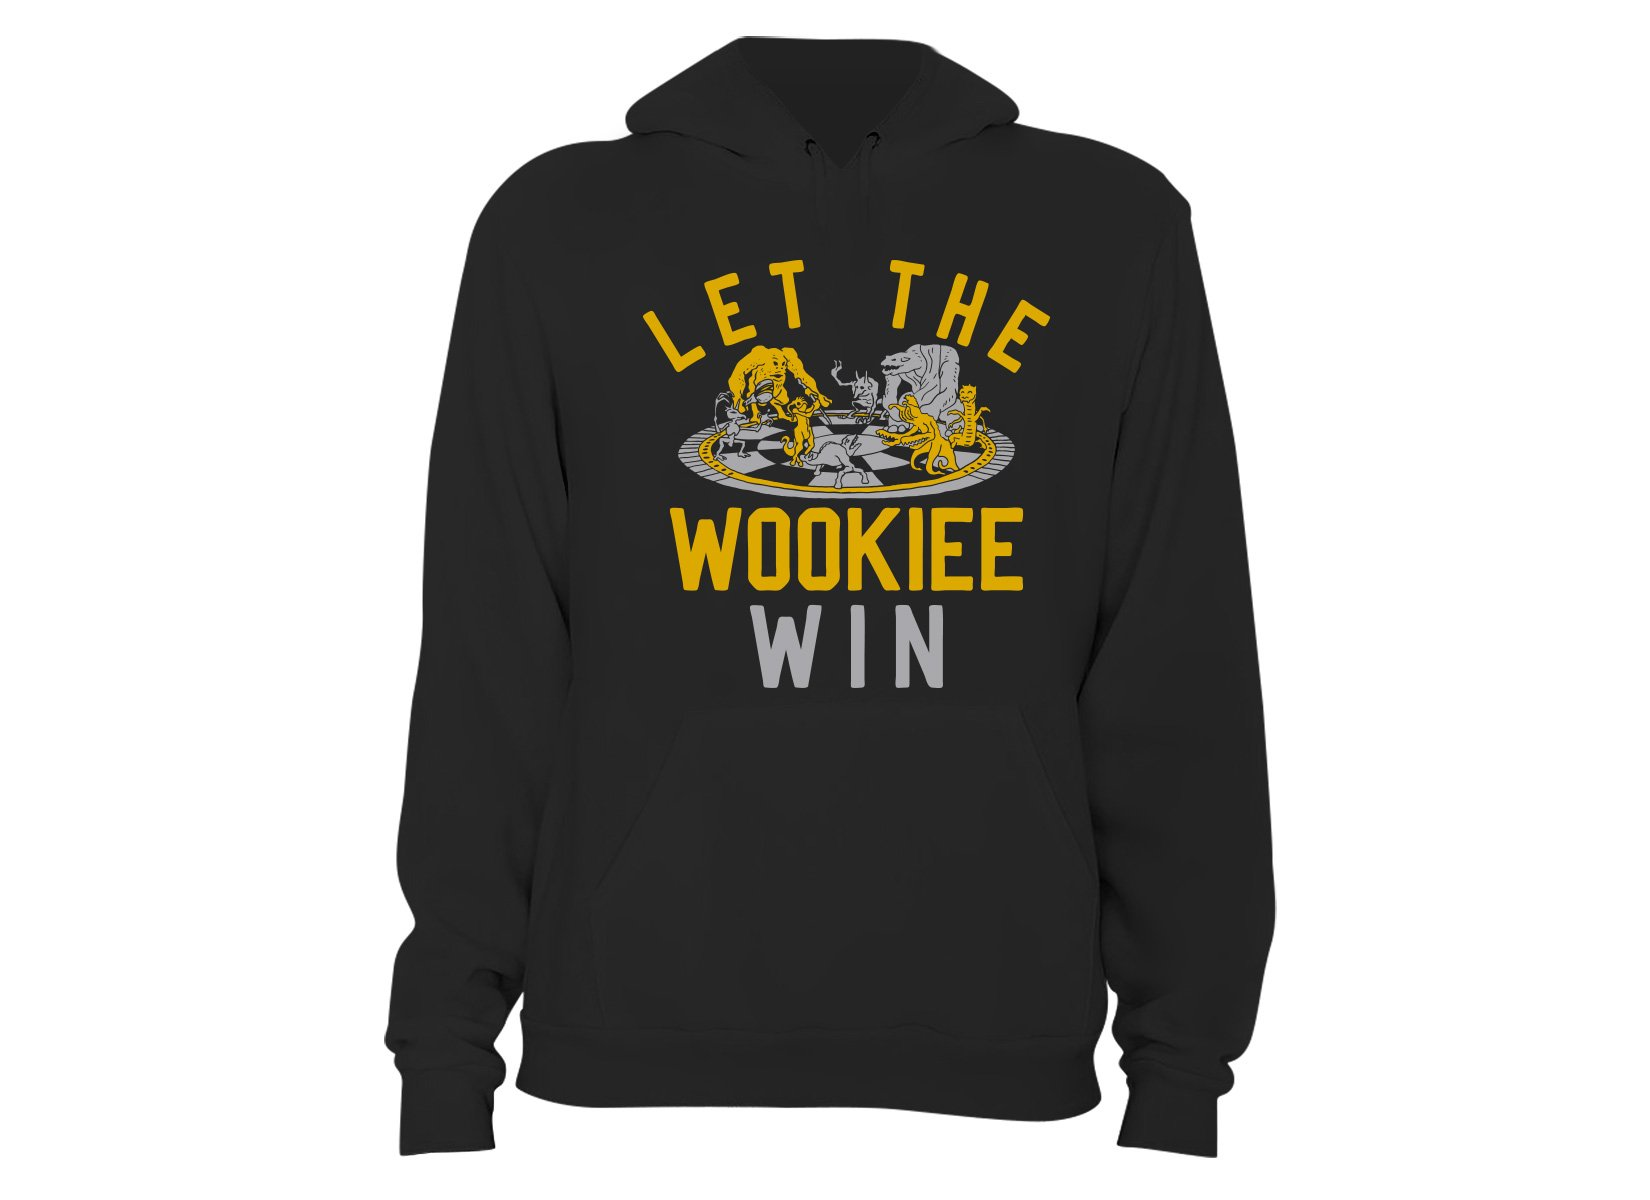 Let The Wookiee Win on Hoodie